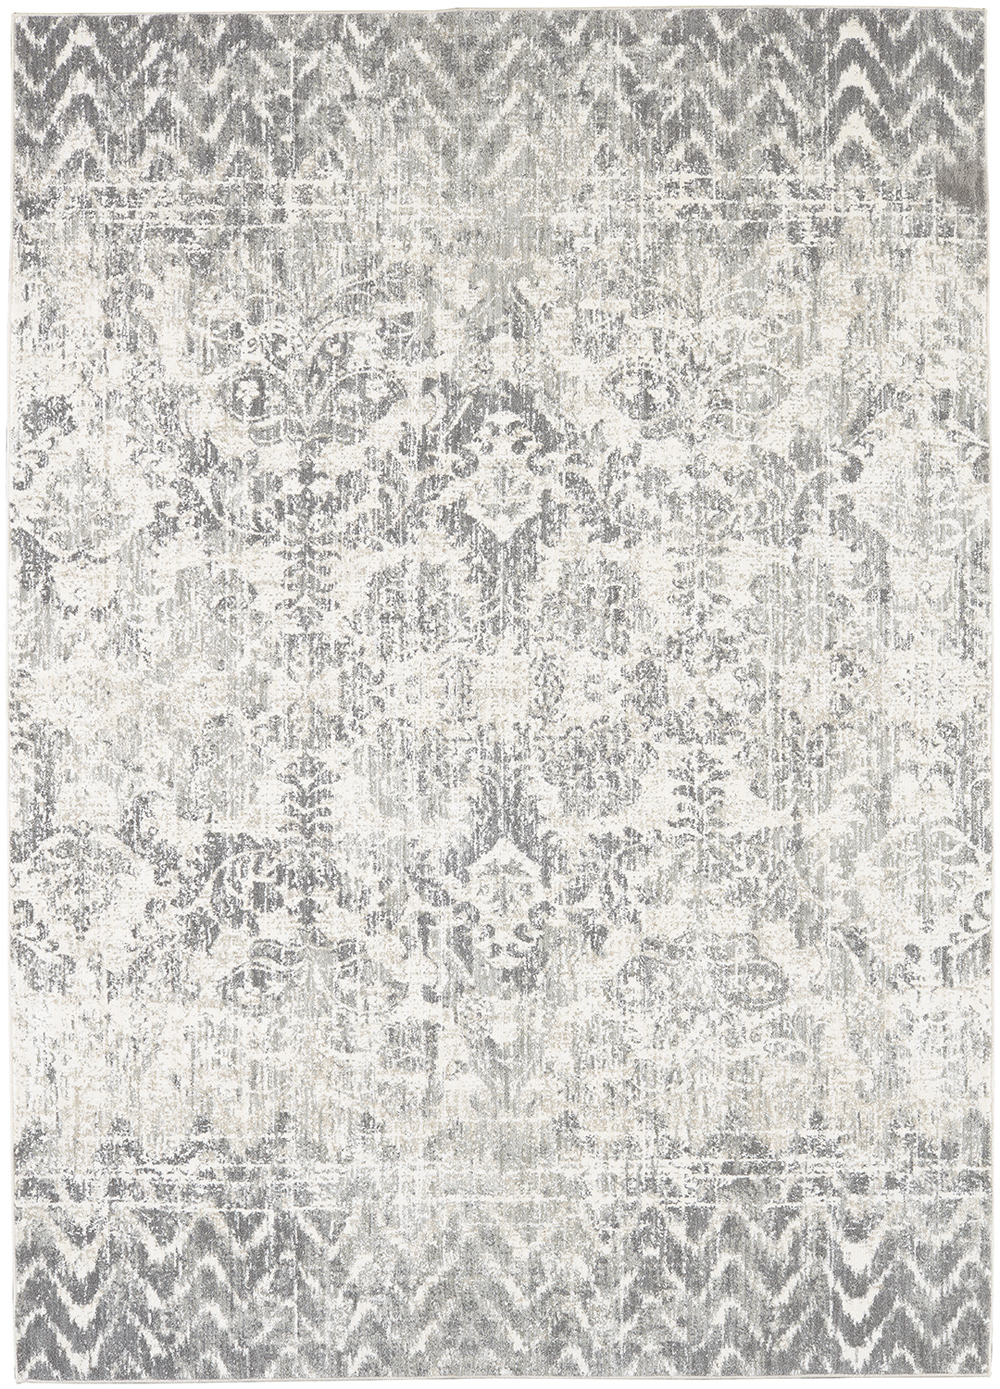 Karastan Touchstone Le Jardin Willow Gray by Patina Vie Natural Cotton Rug